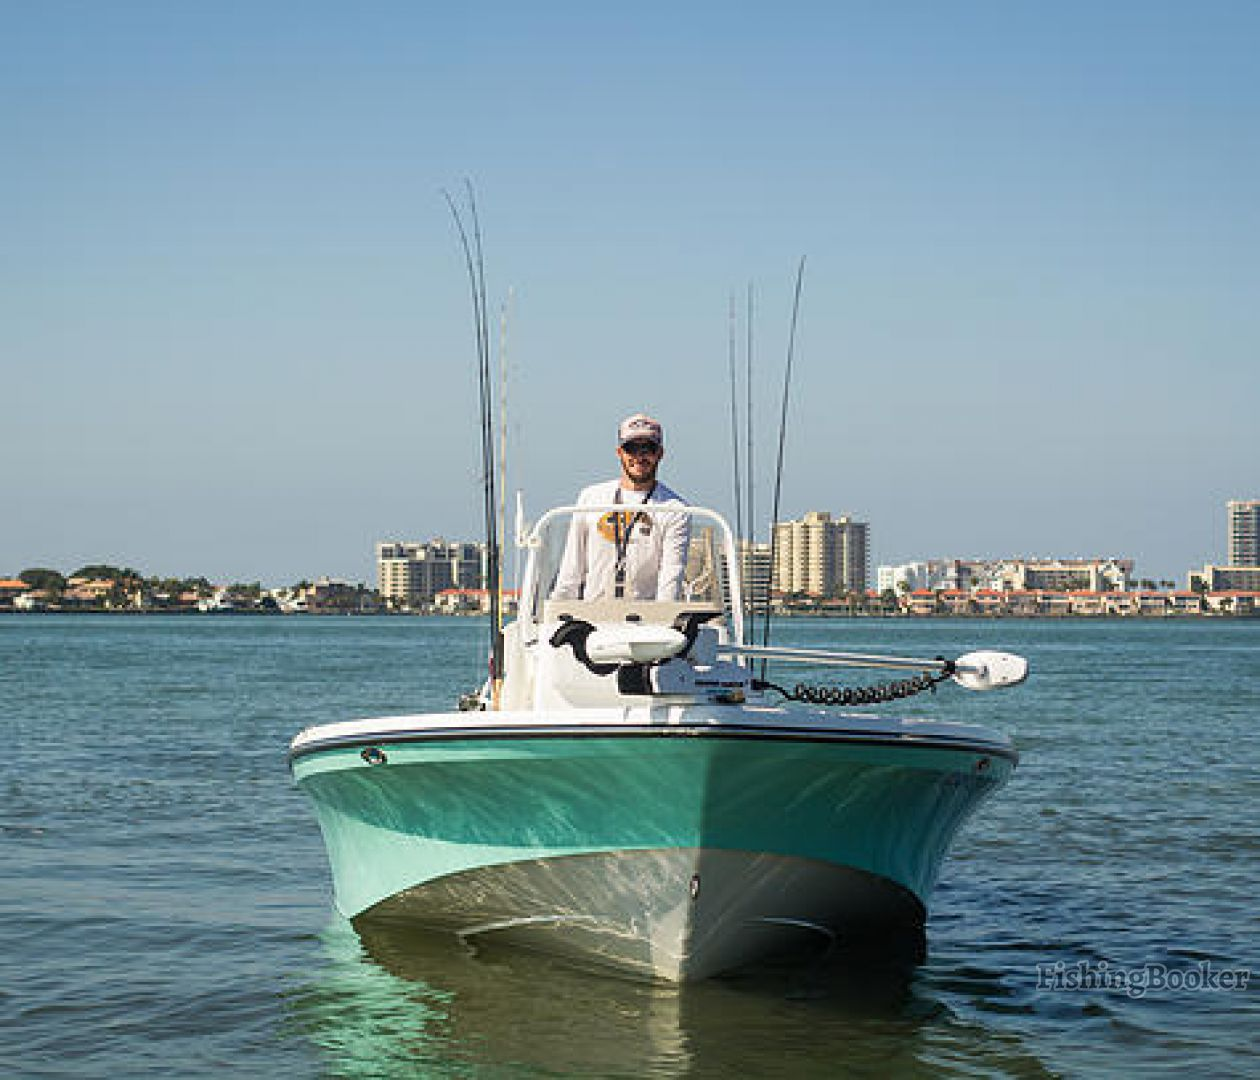 Prime tide fishing charters clearwater florida for Fishing charters clearwater fl